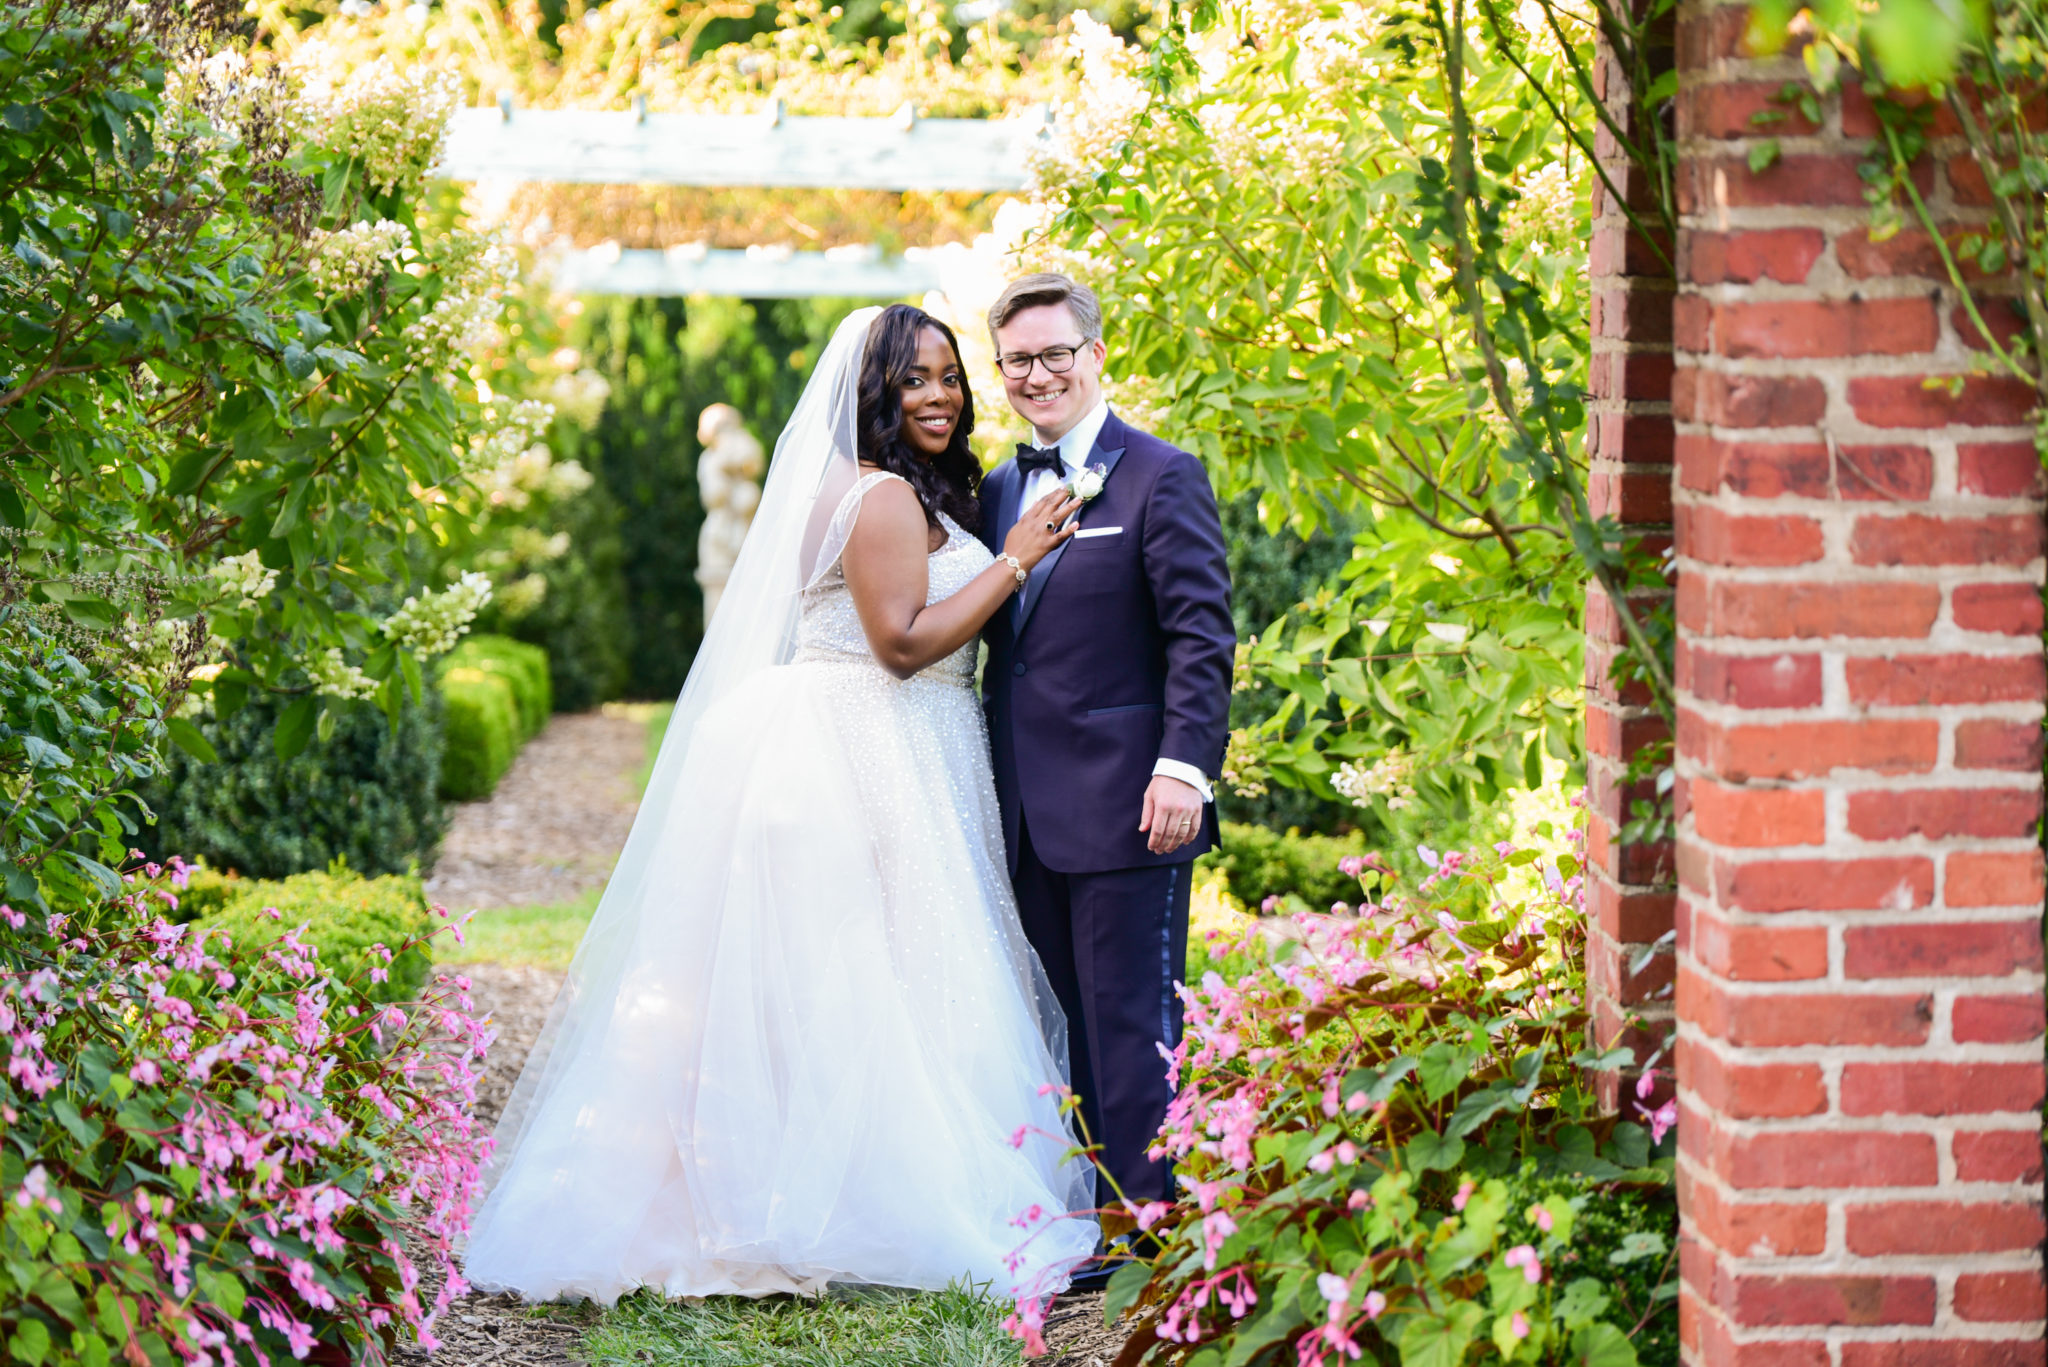 A wedding couple stand and smile on a garden walkway.